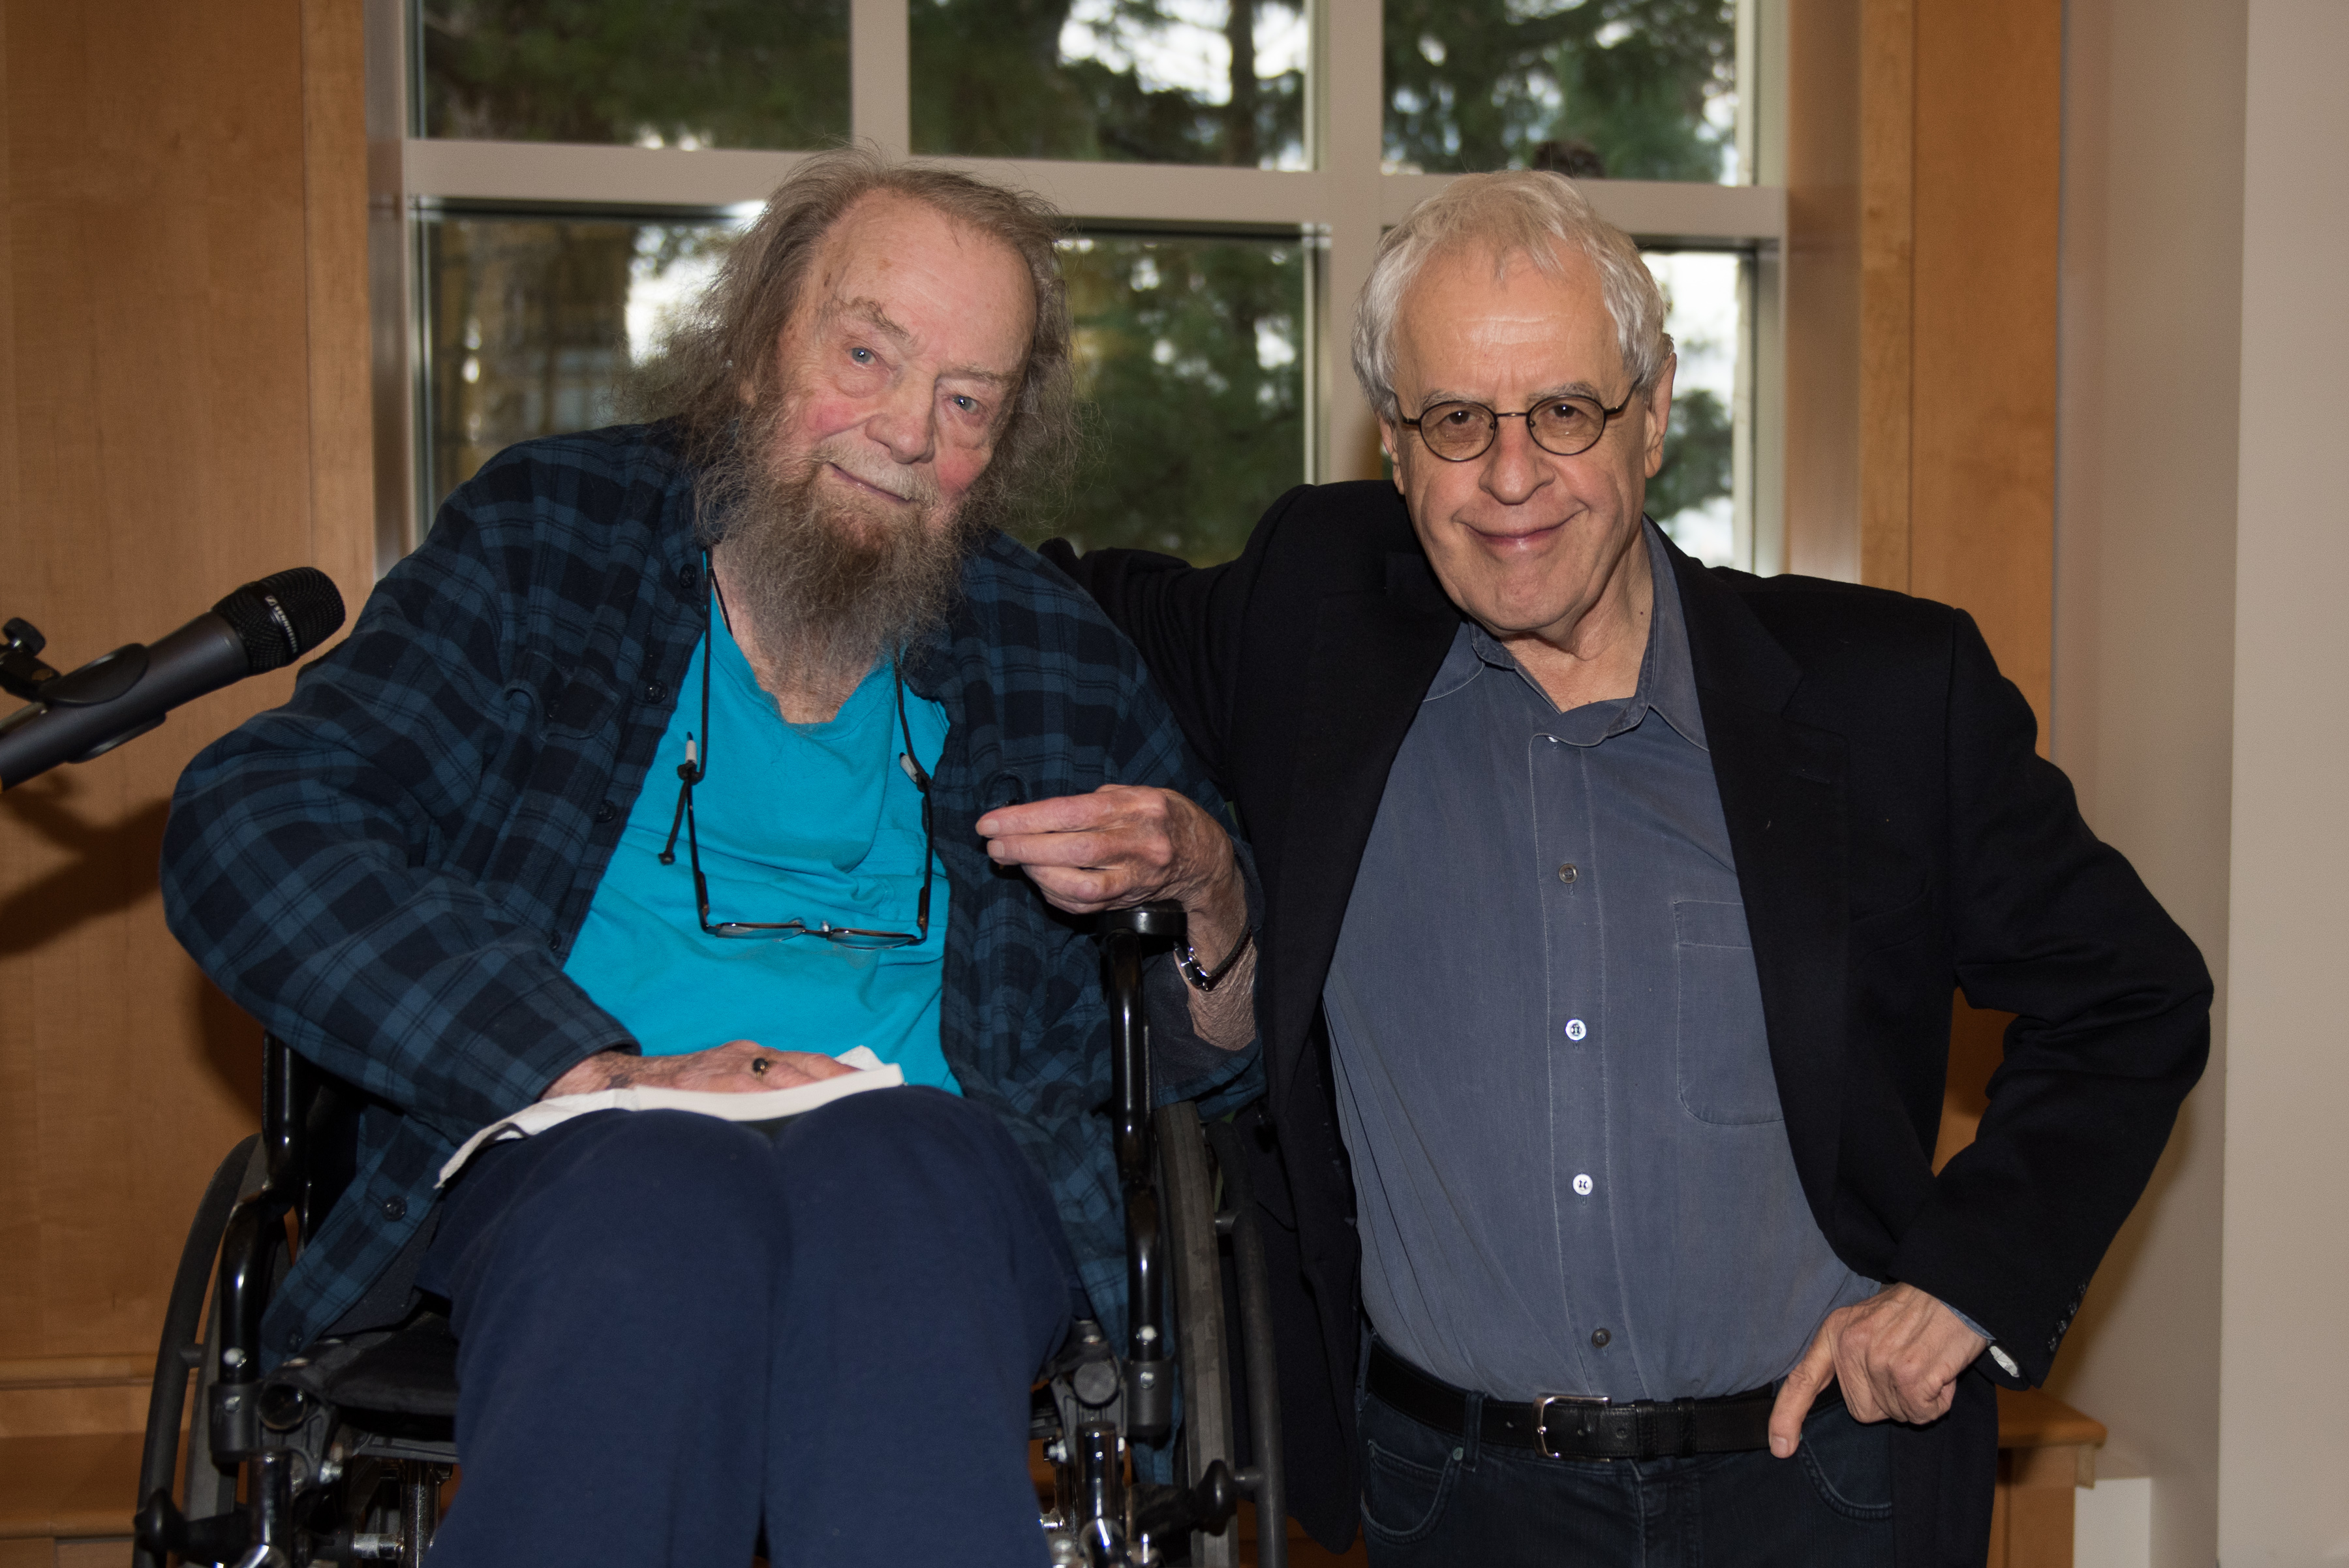 Donald Hall's 90th Birthday Celebration